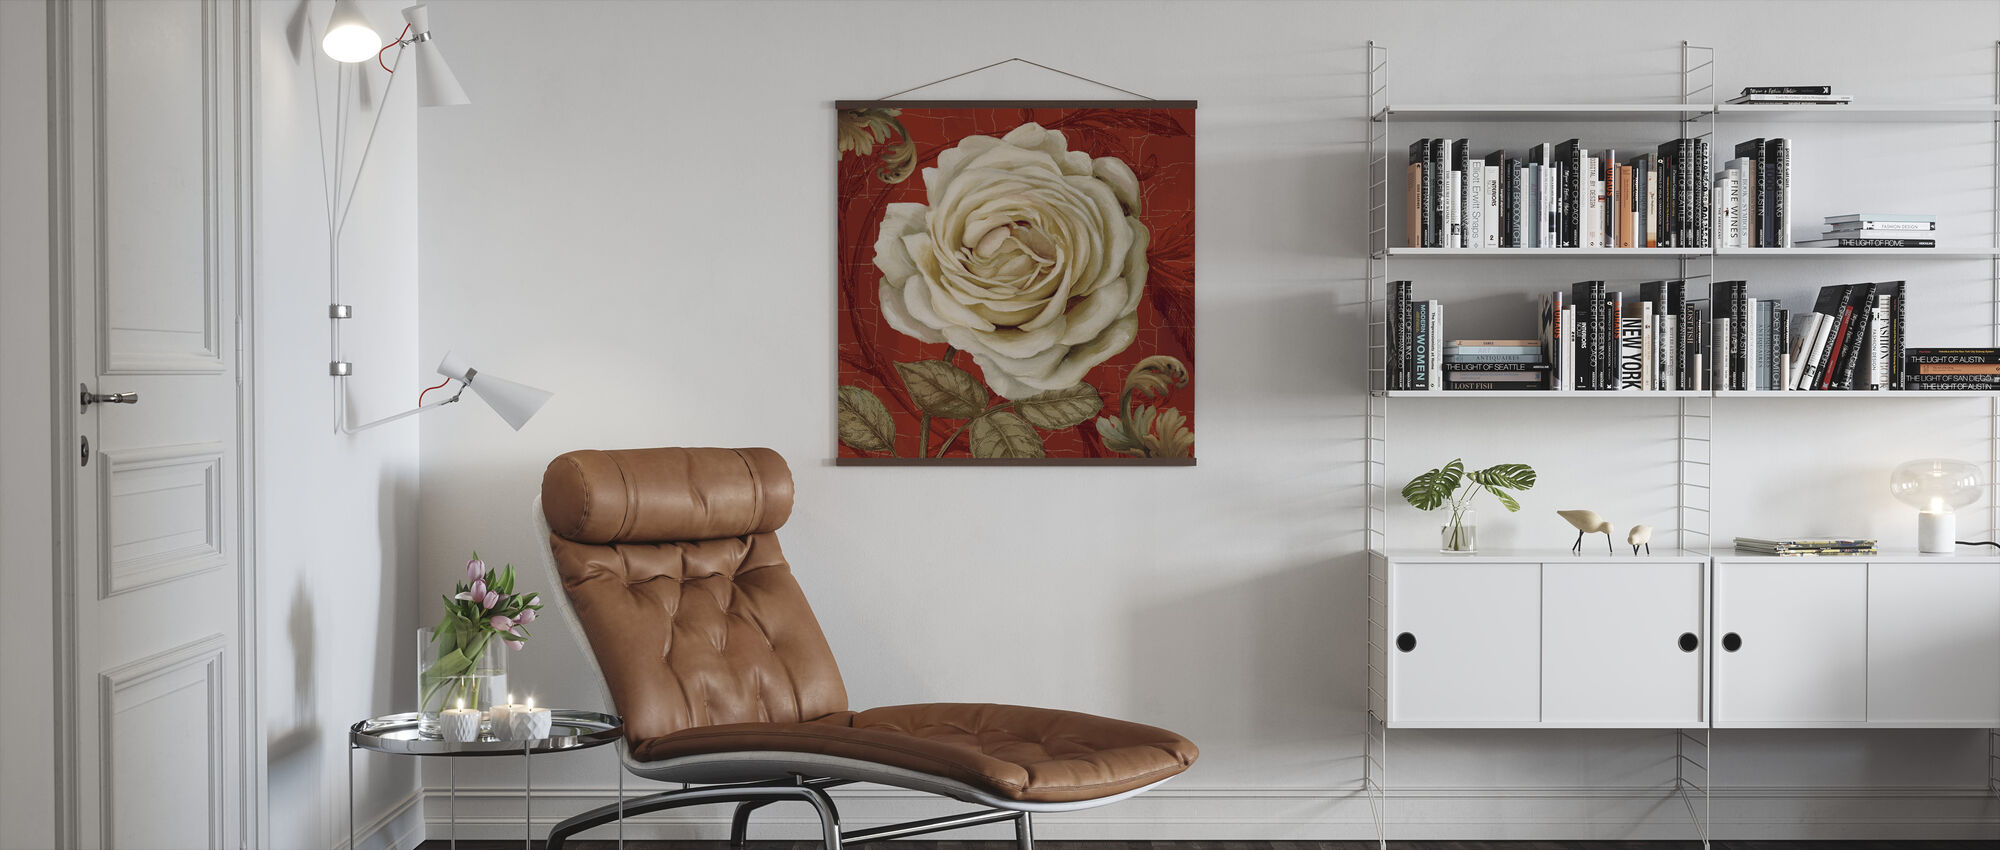 Red Bourgeoisie 2 - Poster - Living Room